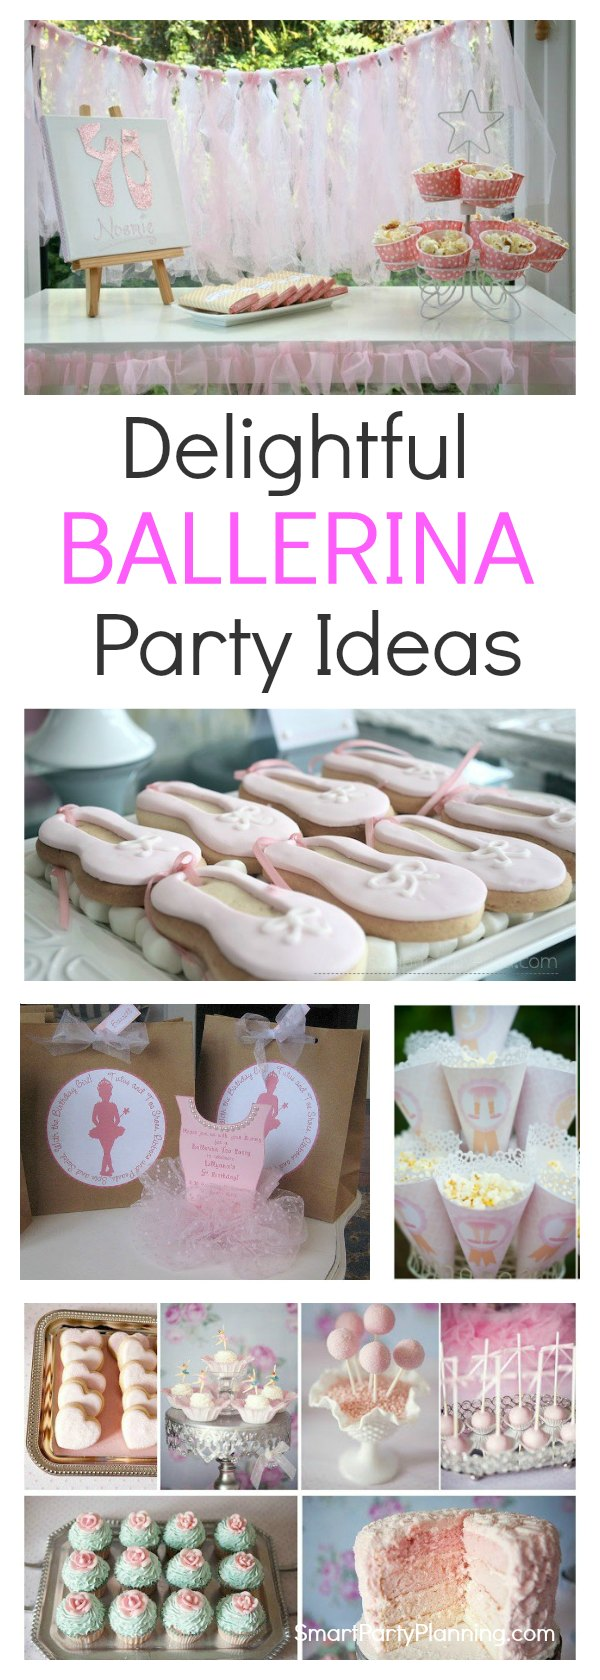 For an angelic little girl, she will love these ballerina party ideas.  With ideas for party styling with easy décor and food, this is one of those parties you will remember forever. Whether it's a first birthday or a tenth birthday, there is something magical about a ballerina party and all the girls will love it.  Get ready for a splash of pink and lots of tutu's.